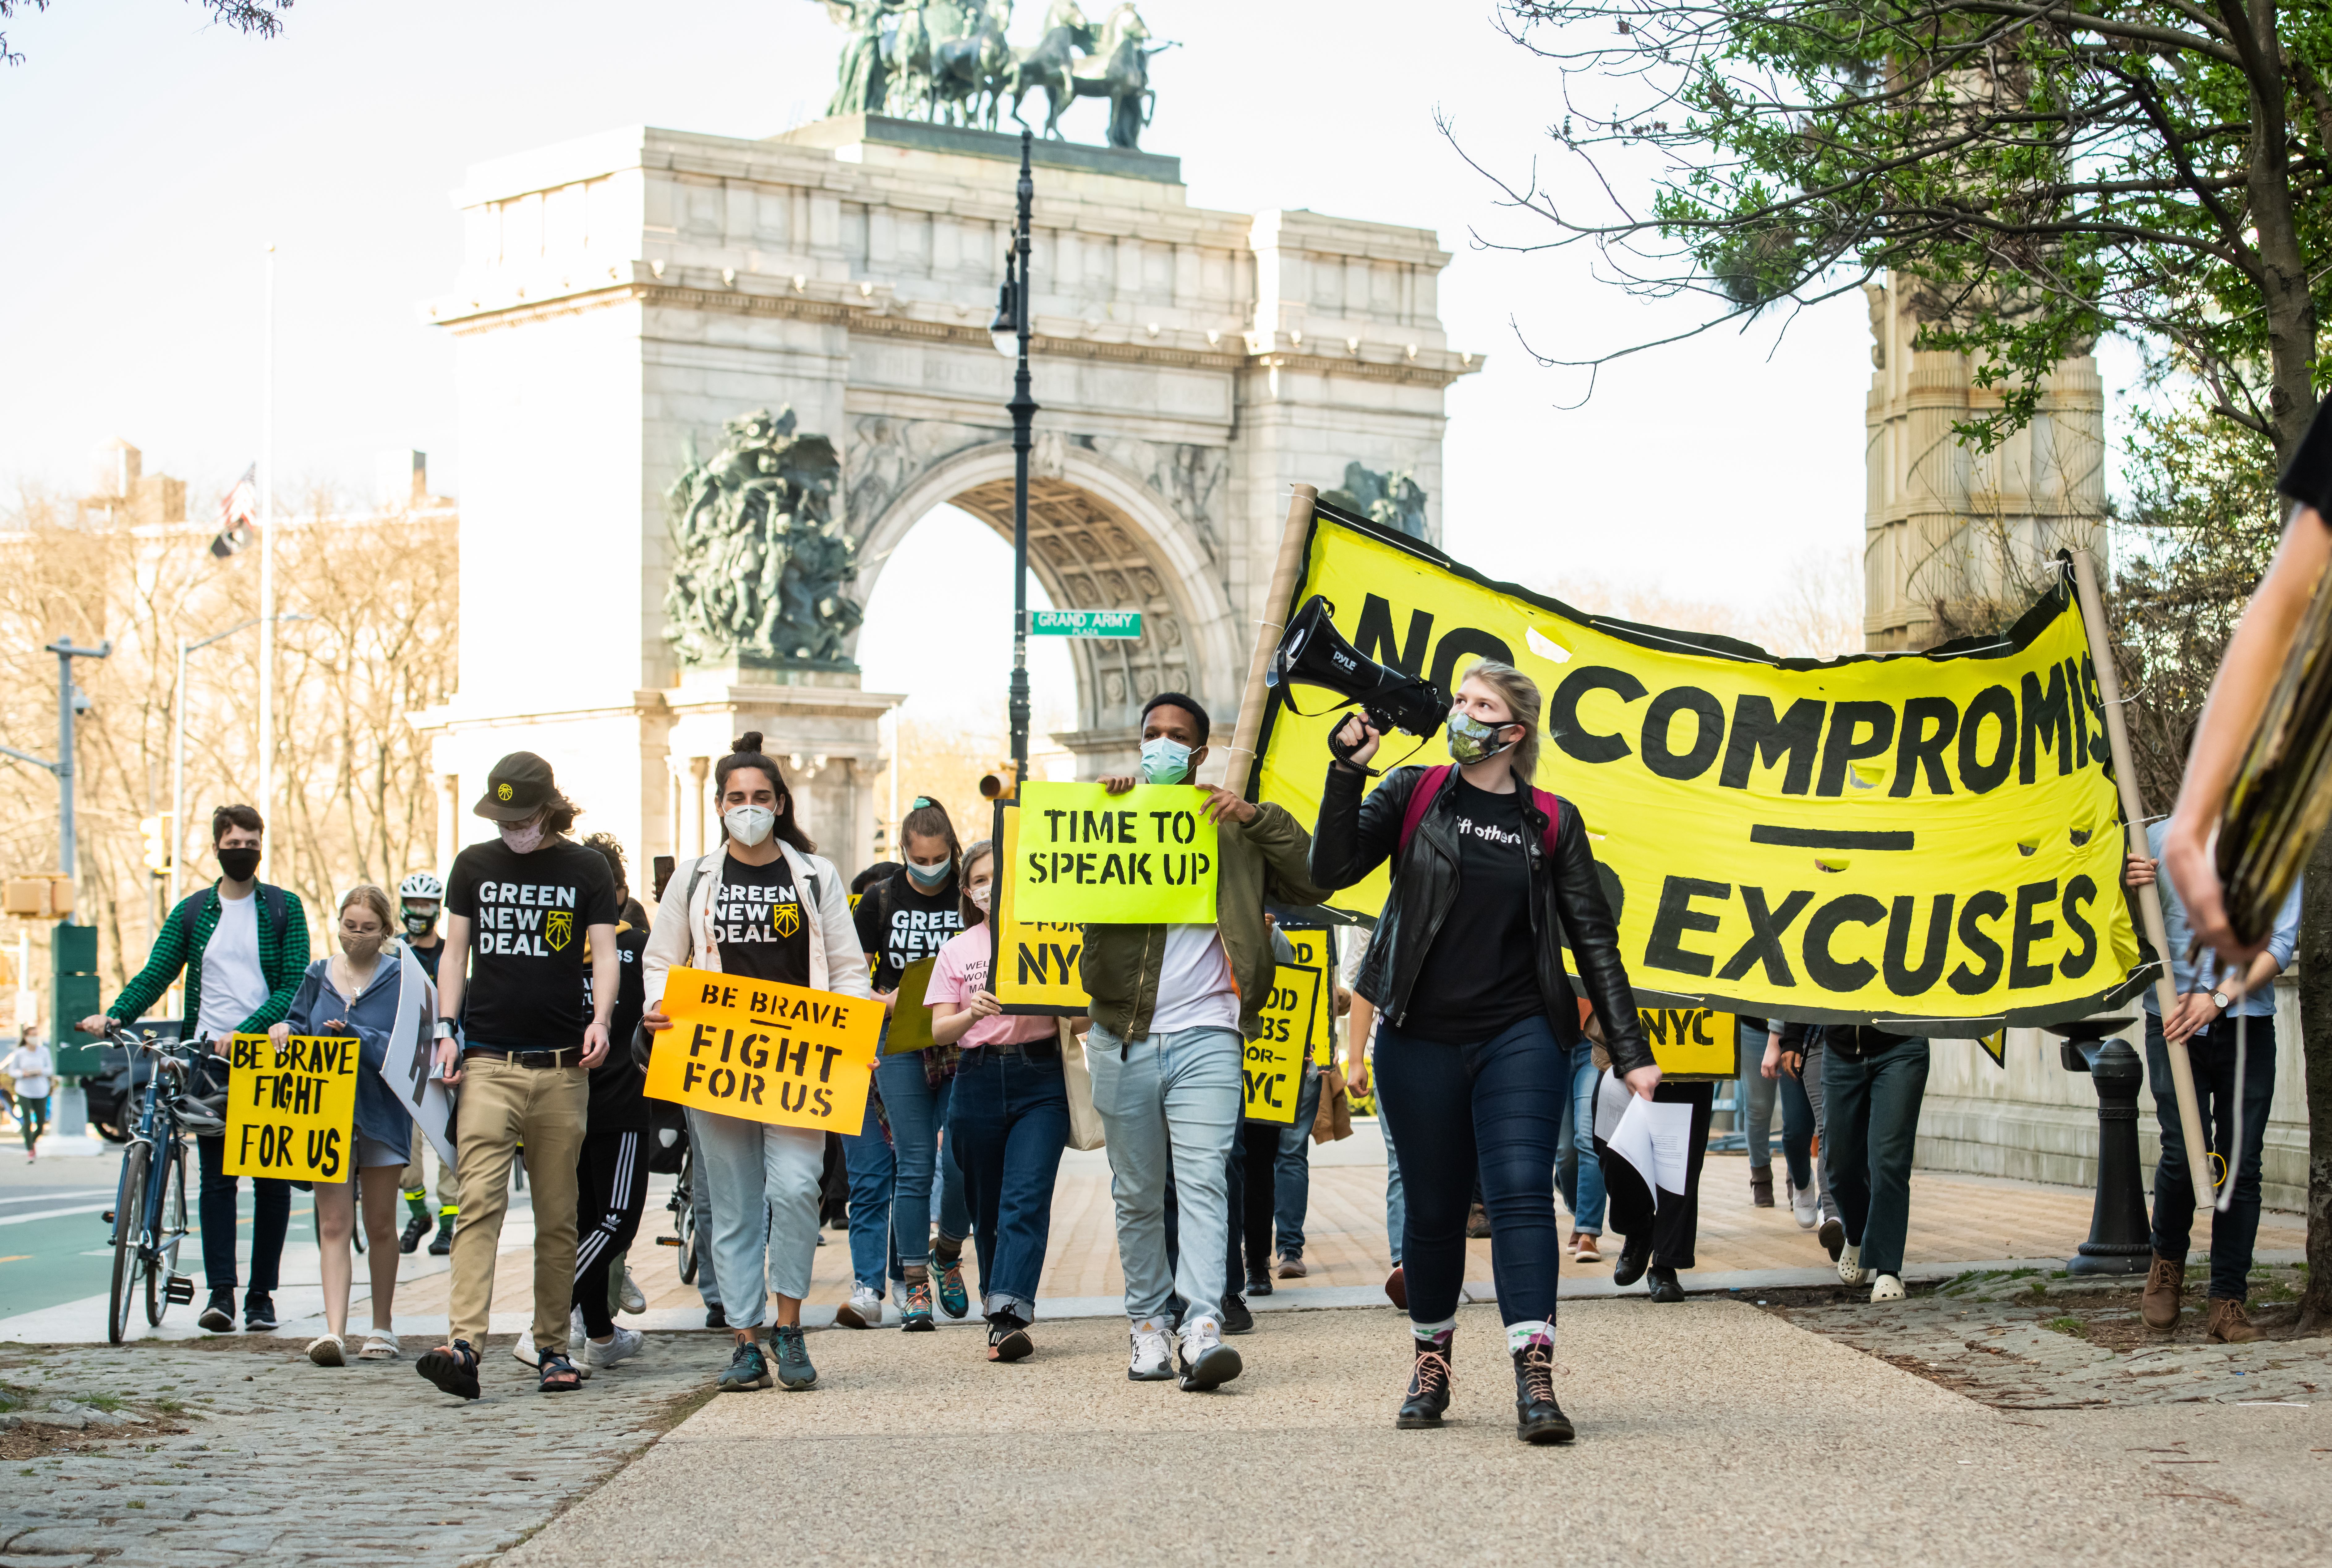 New Yorkers With The Sunrise Movement Take Action In Brooklyn For An Economic Recovery And Infrastructure Package Prioritizing Climate, Care, Jobs, And Justice, Calling On Congress To Pass The THRIVE Act